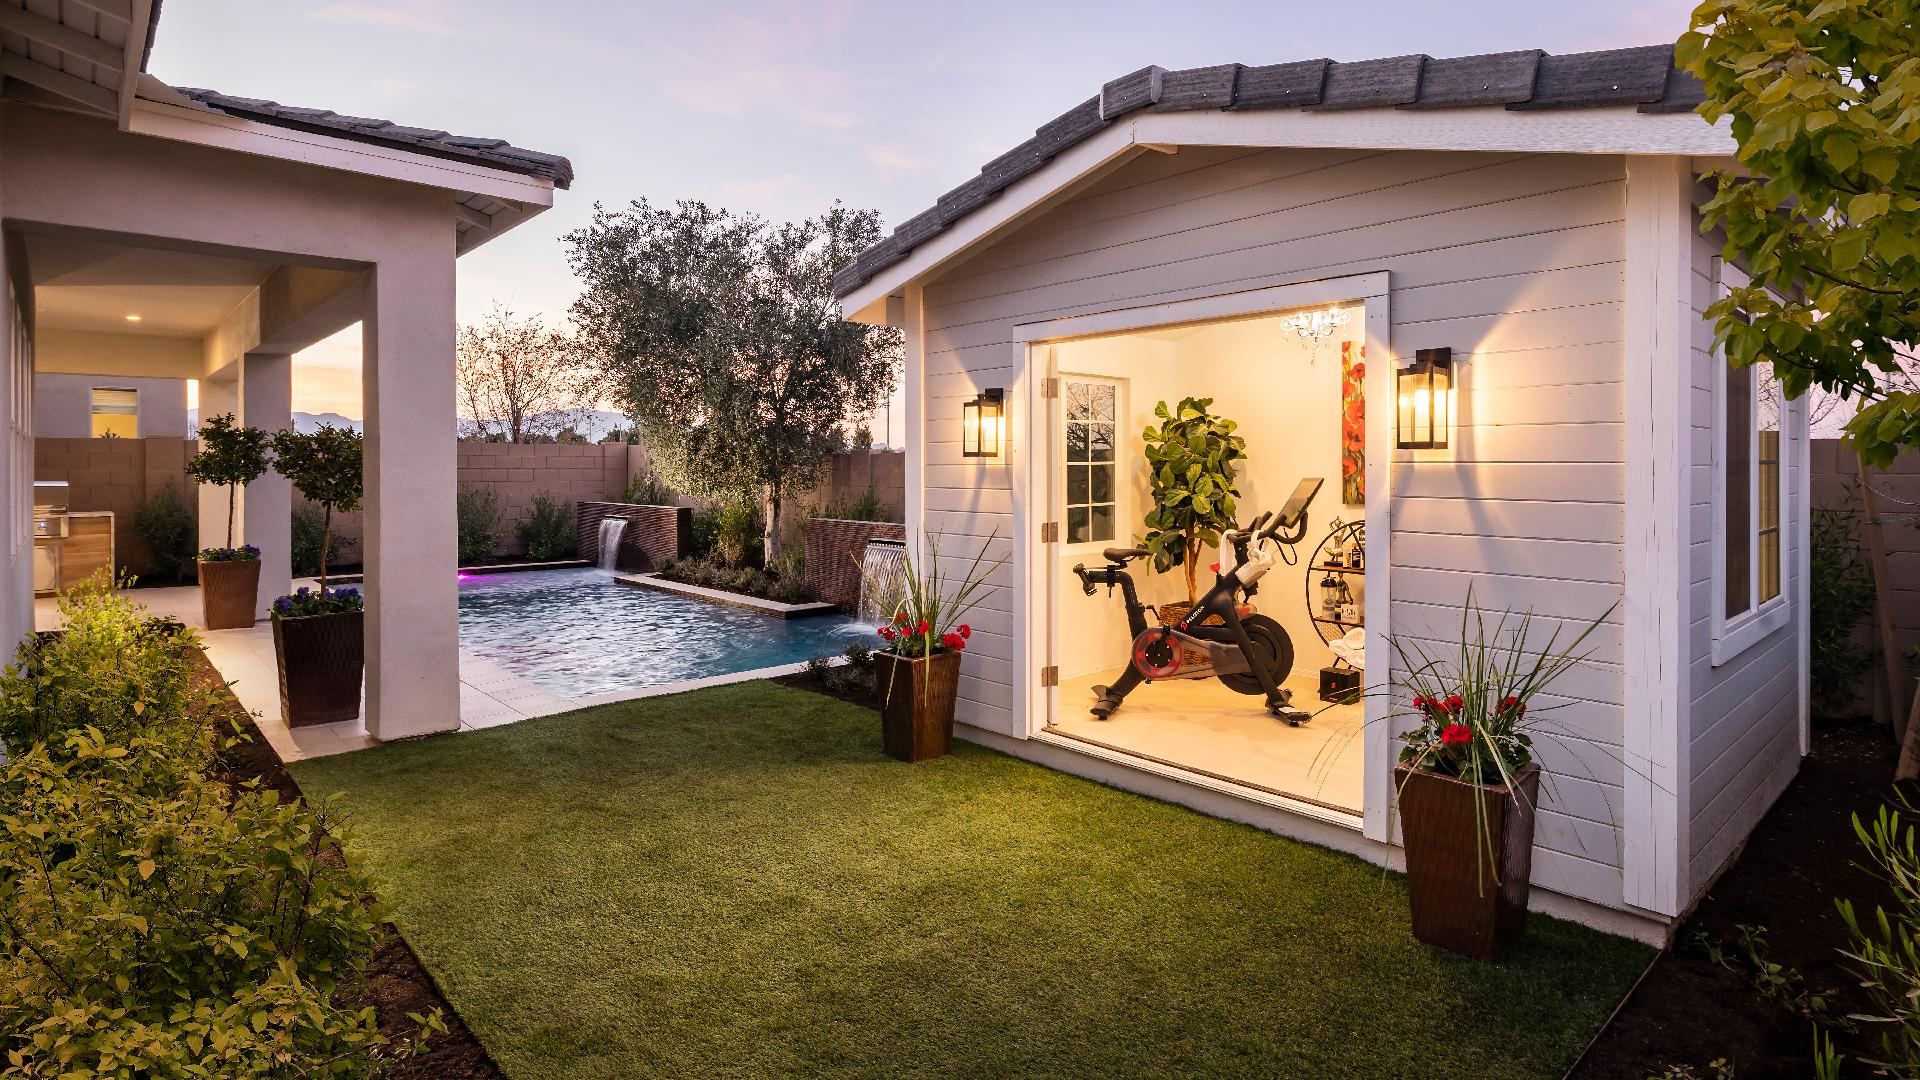 Secluded backyard shed provides the perfect space for a home gym